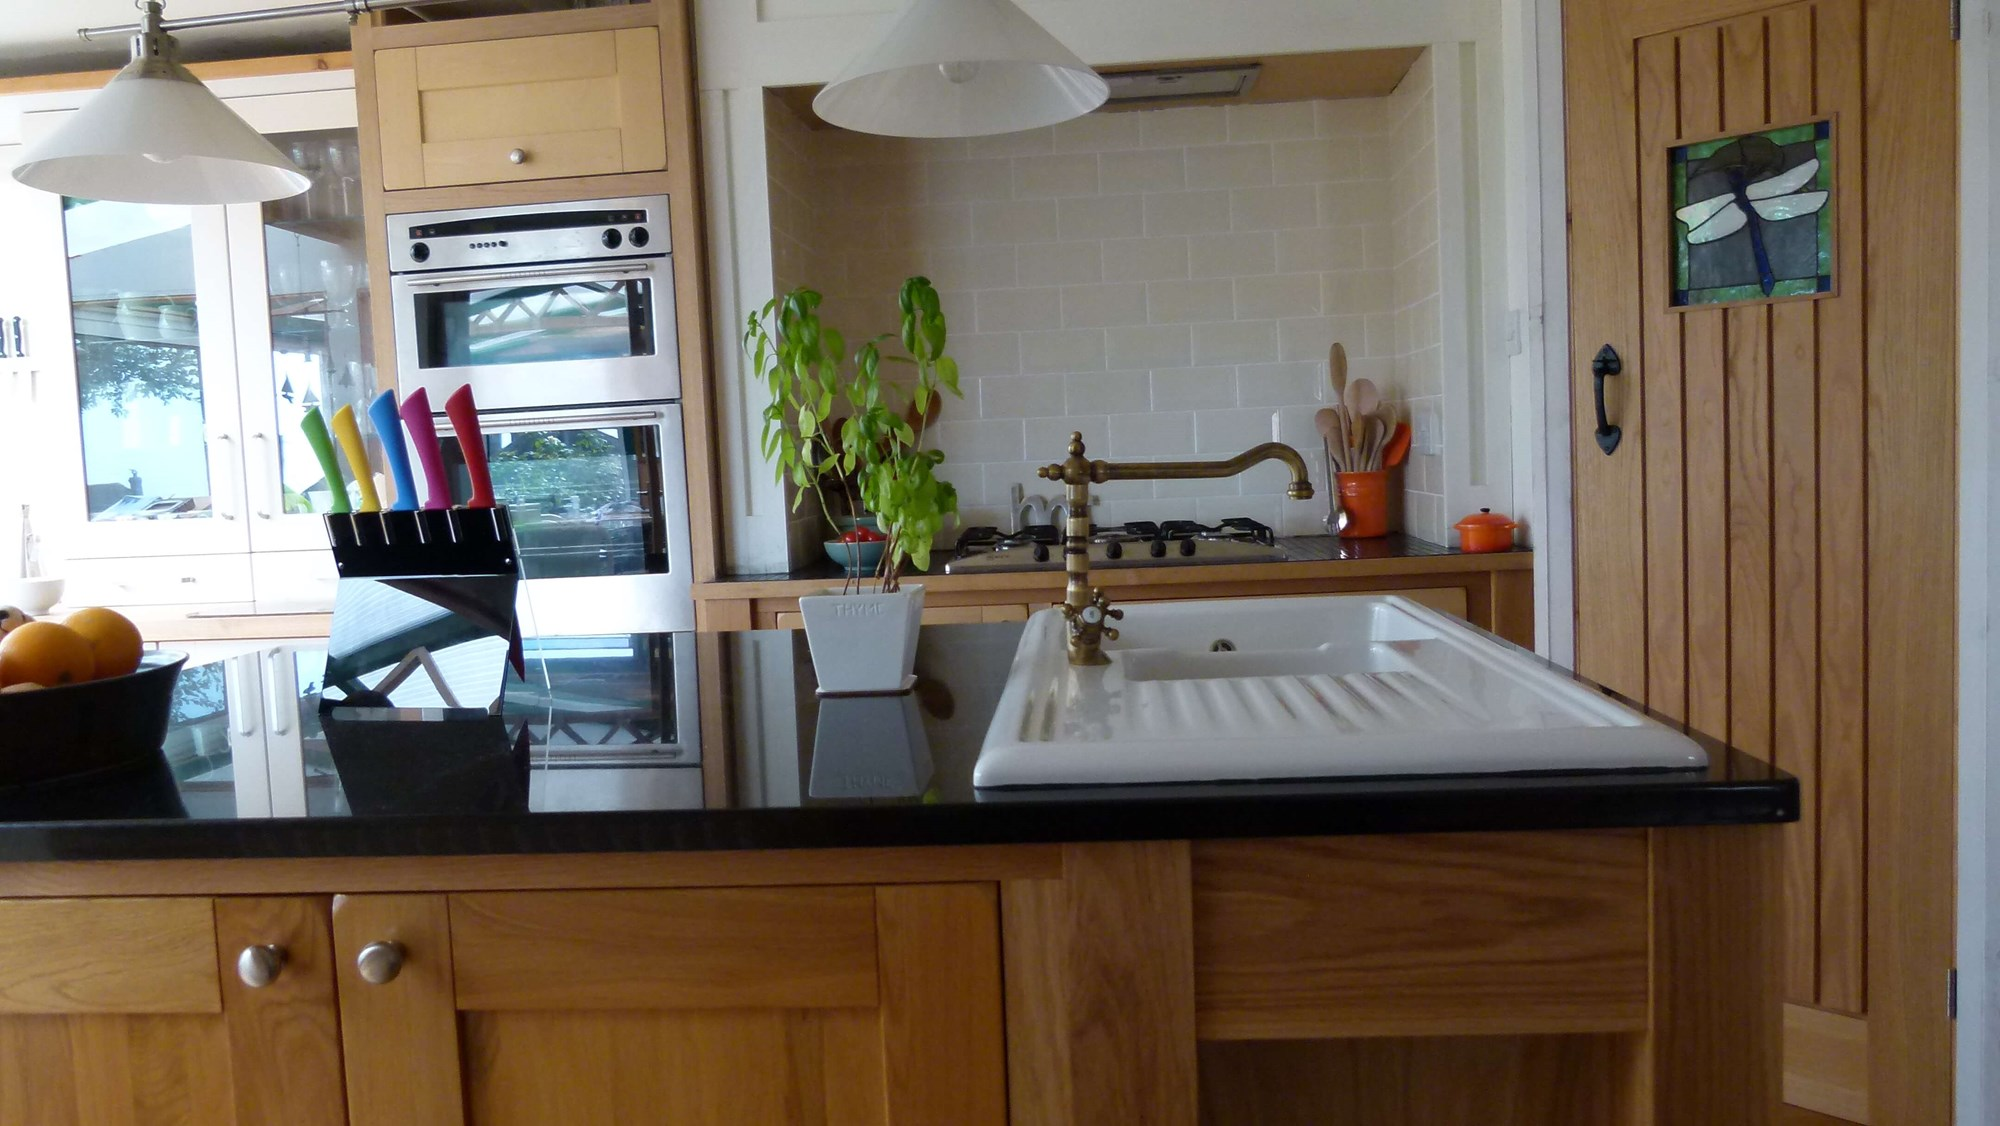 Kitchen with central island crafted from American white oak, topped with black granite. One and a half bowl china sink with traditional French mixer tap